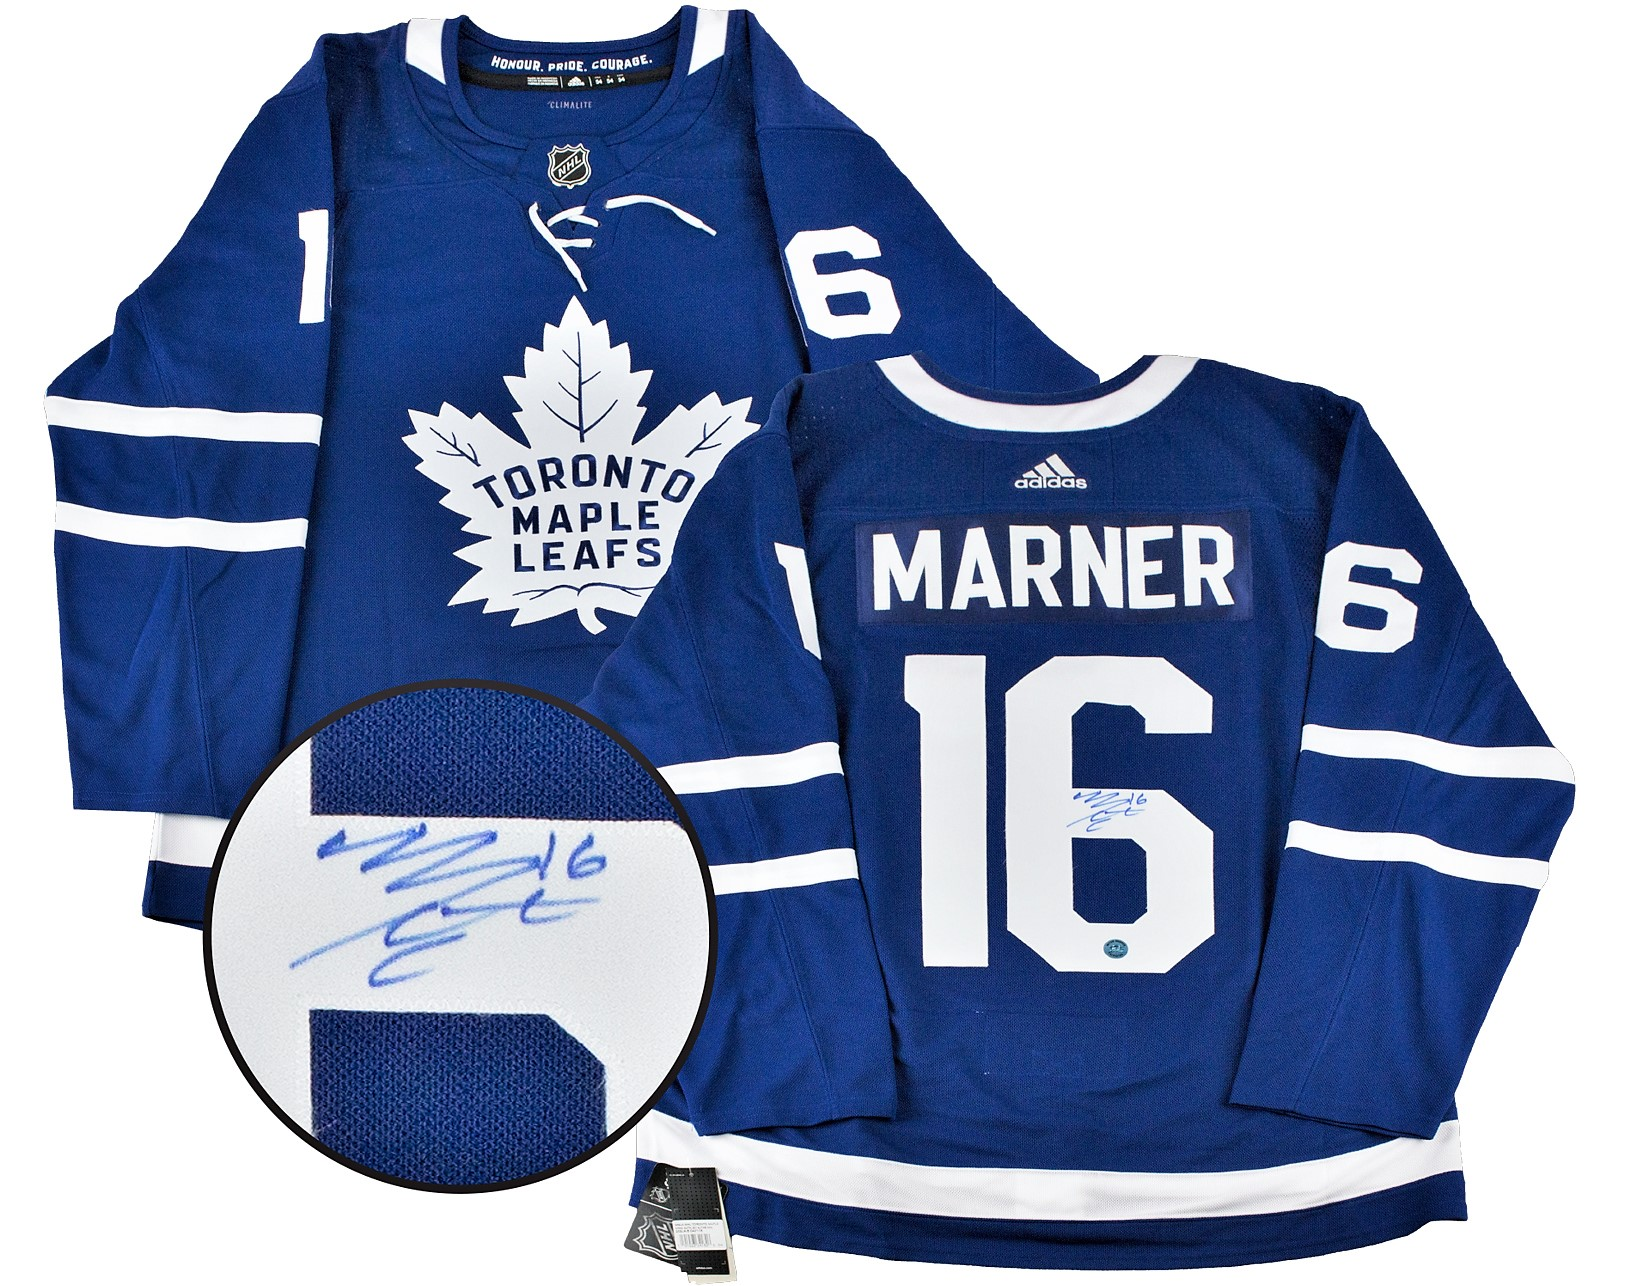 buy popular 4356c e9cde Mitch Marner Autographed Toronto Maple Leafs Jersey